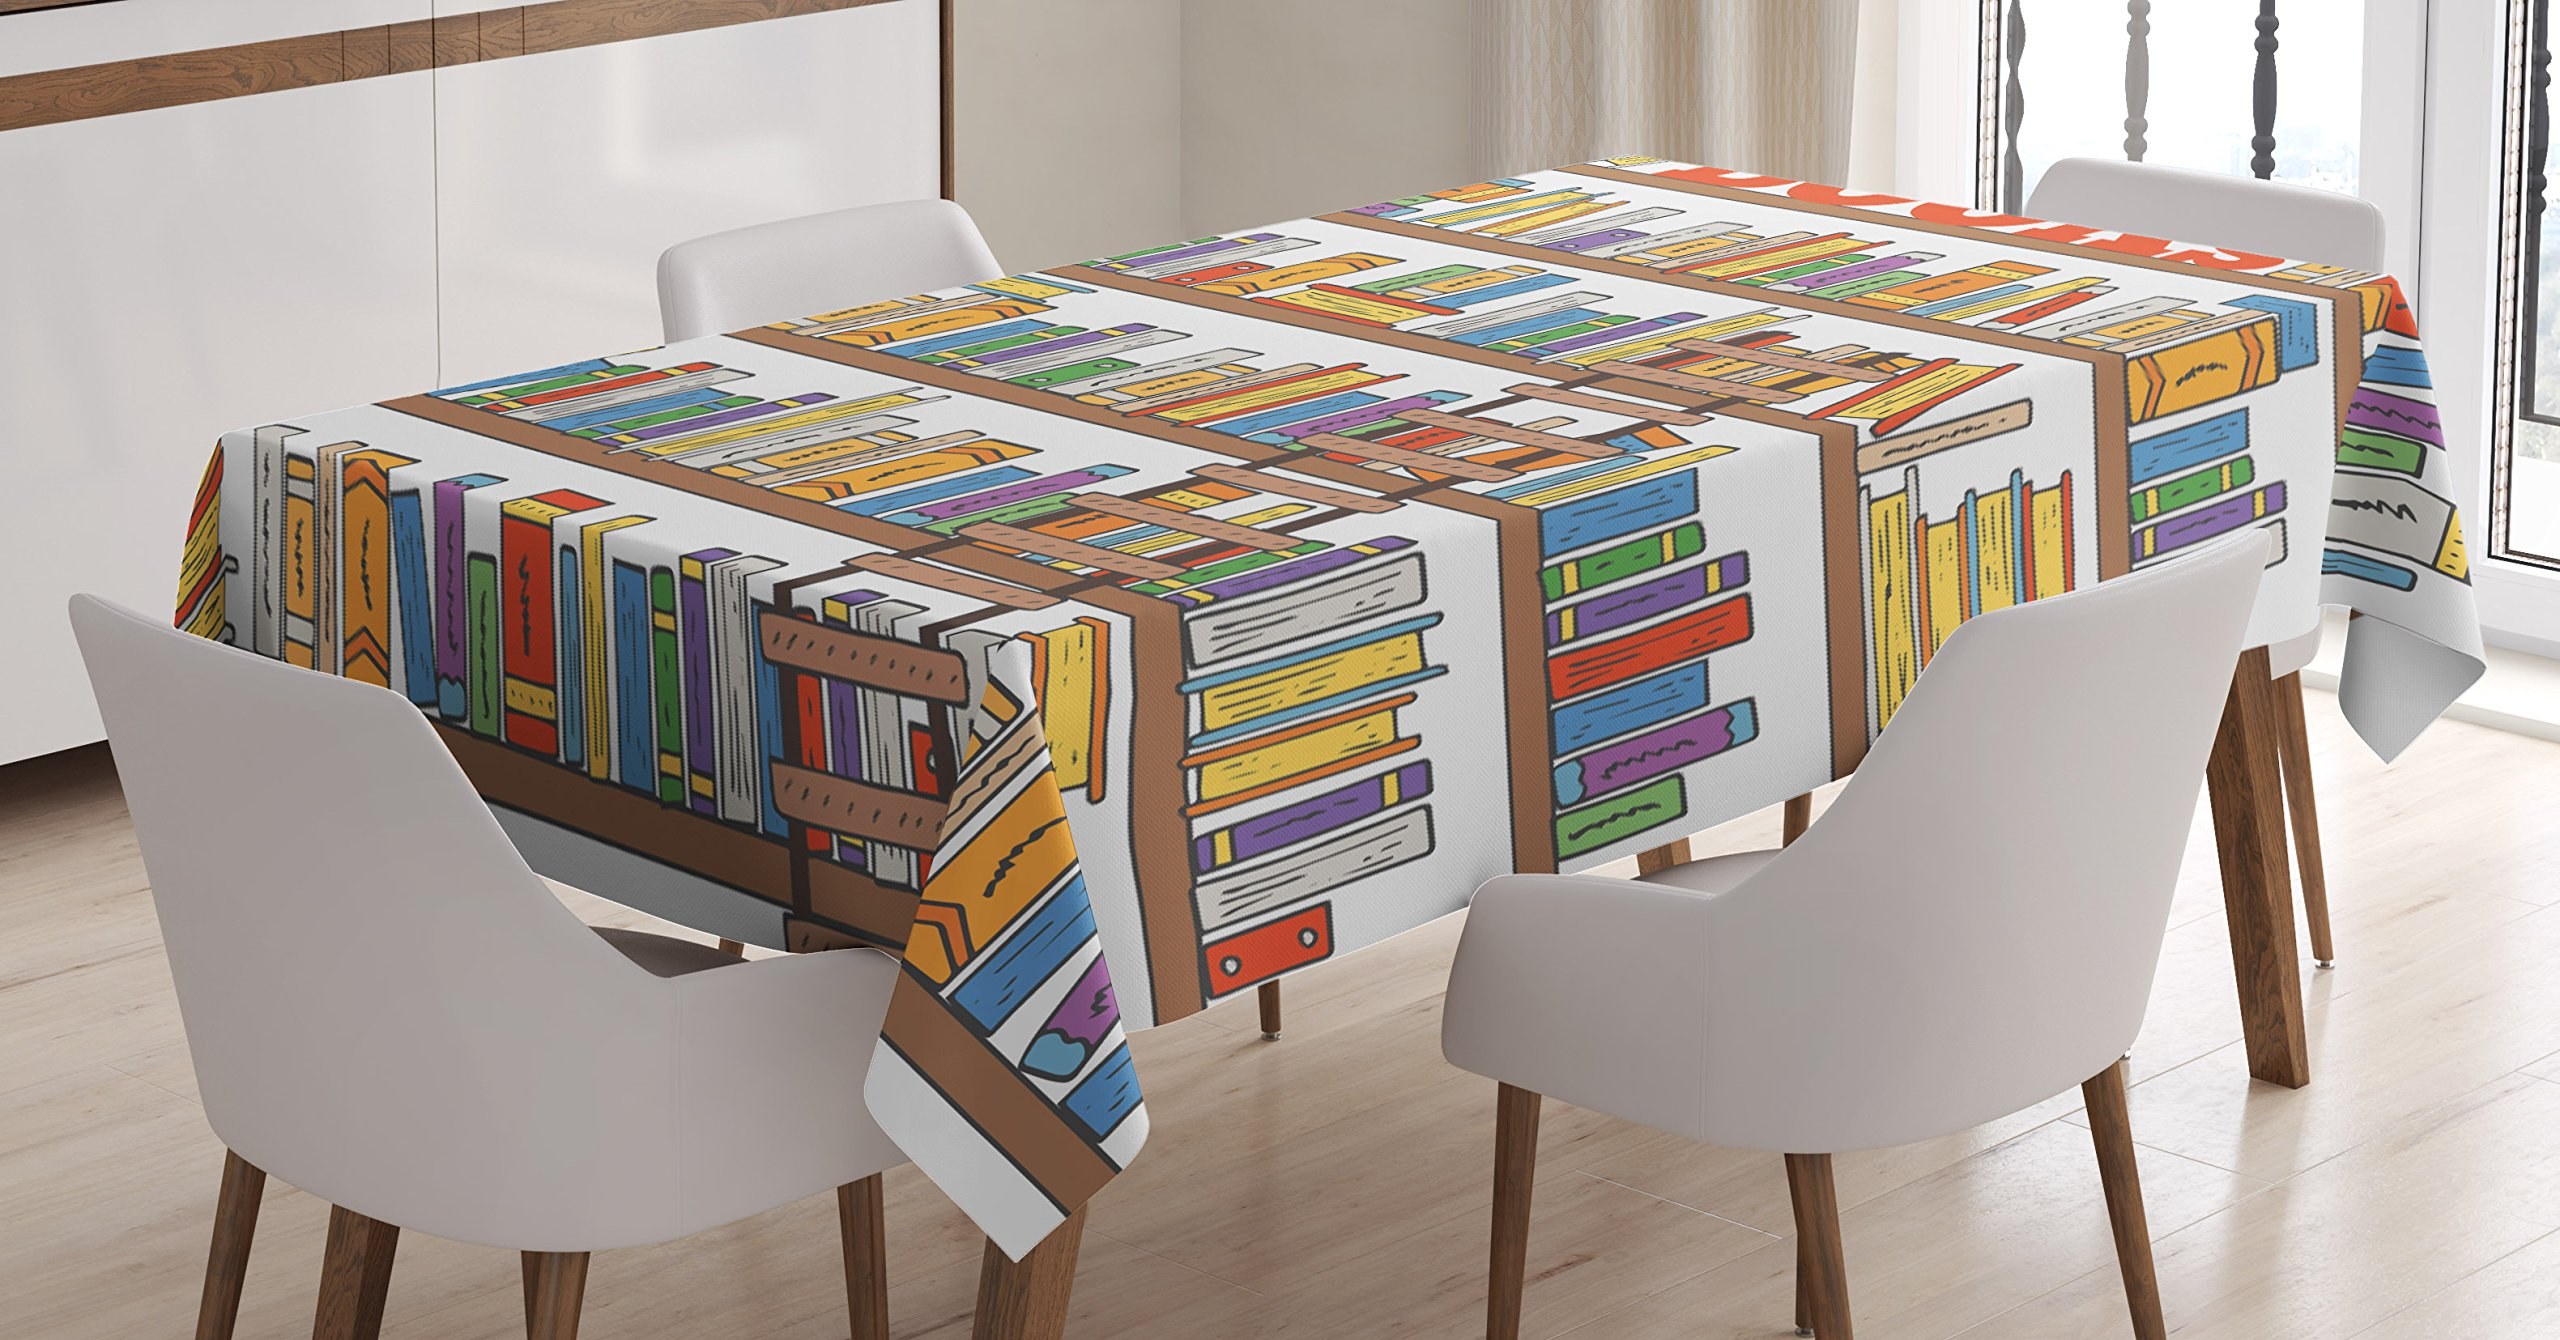 Modern Tablecloth by Ambesonne, Library Bookshelf with A Ladder School Education Campus Life Caricature Illustration, Dining Room Kitchen Rectangular Table Cover, 60 W X 84 L Inches, Multicolor